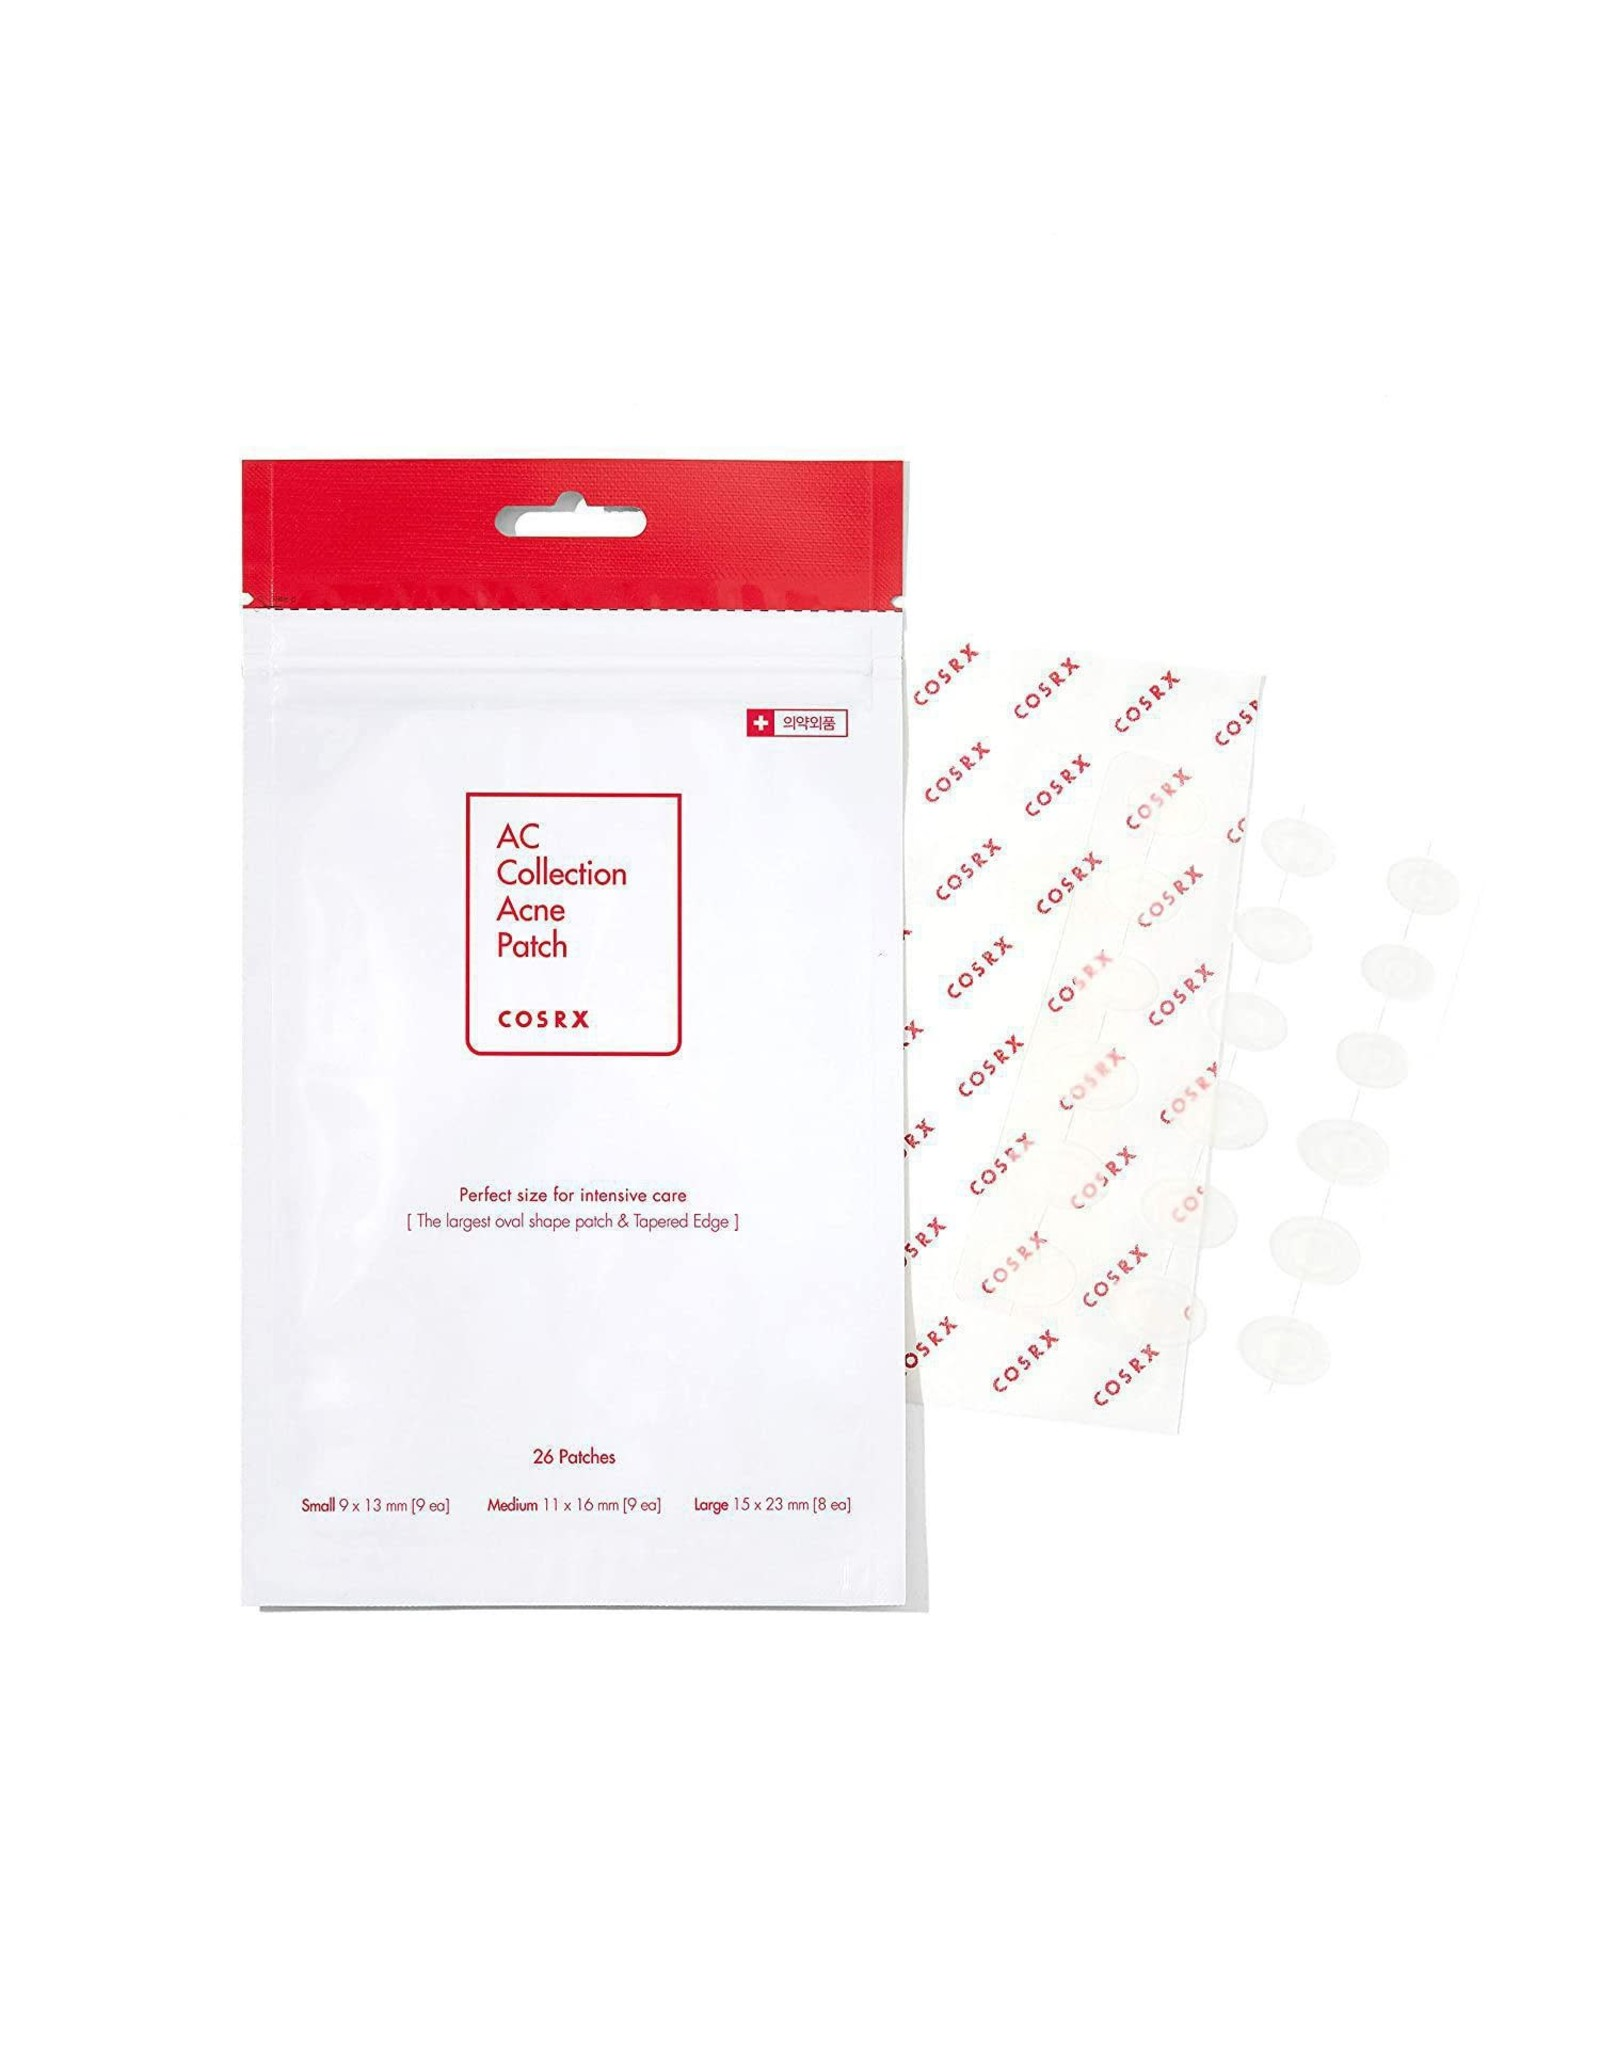 Cosrx Cosrx AC Collection Acne Patch 26pc